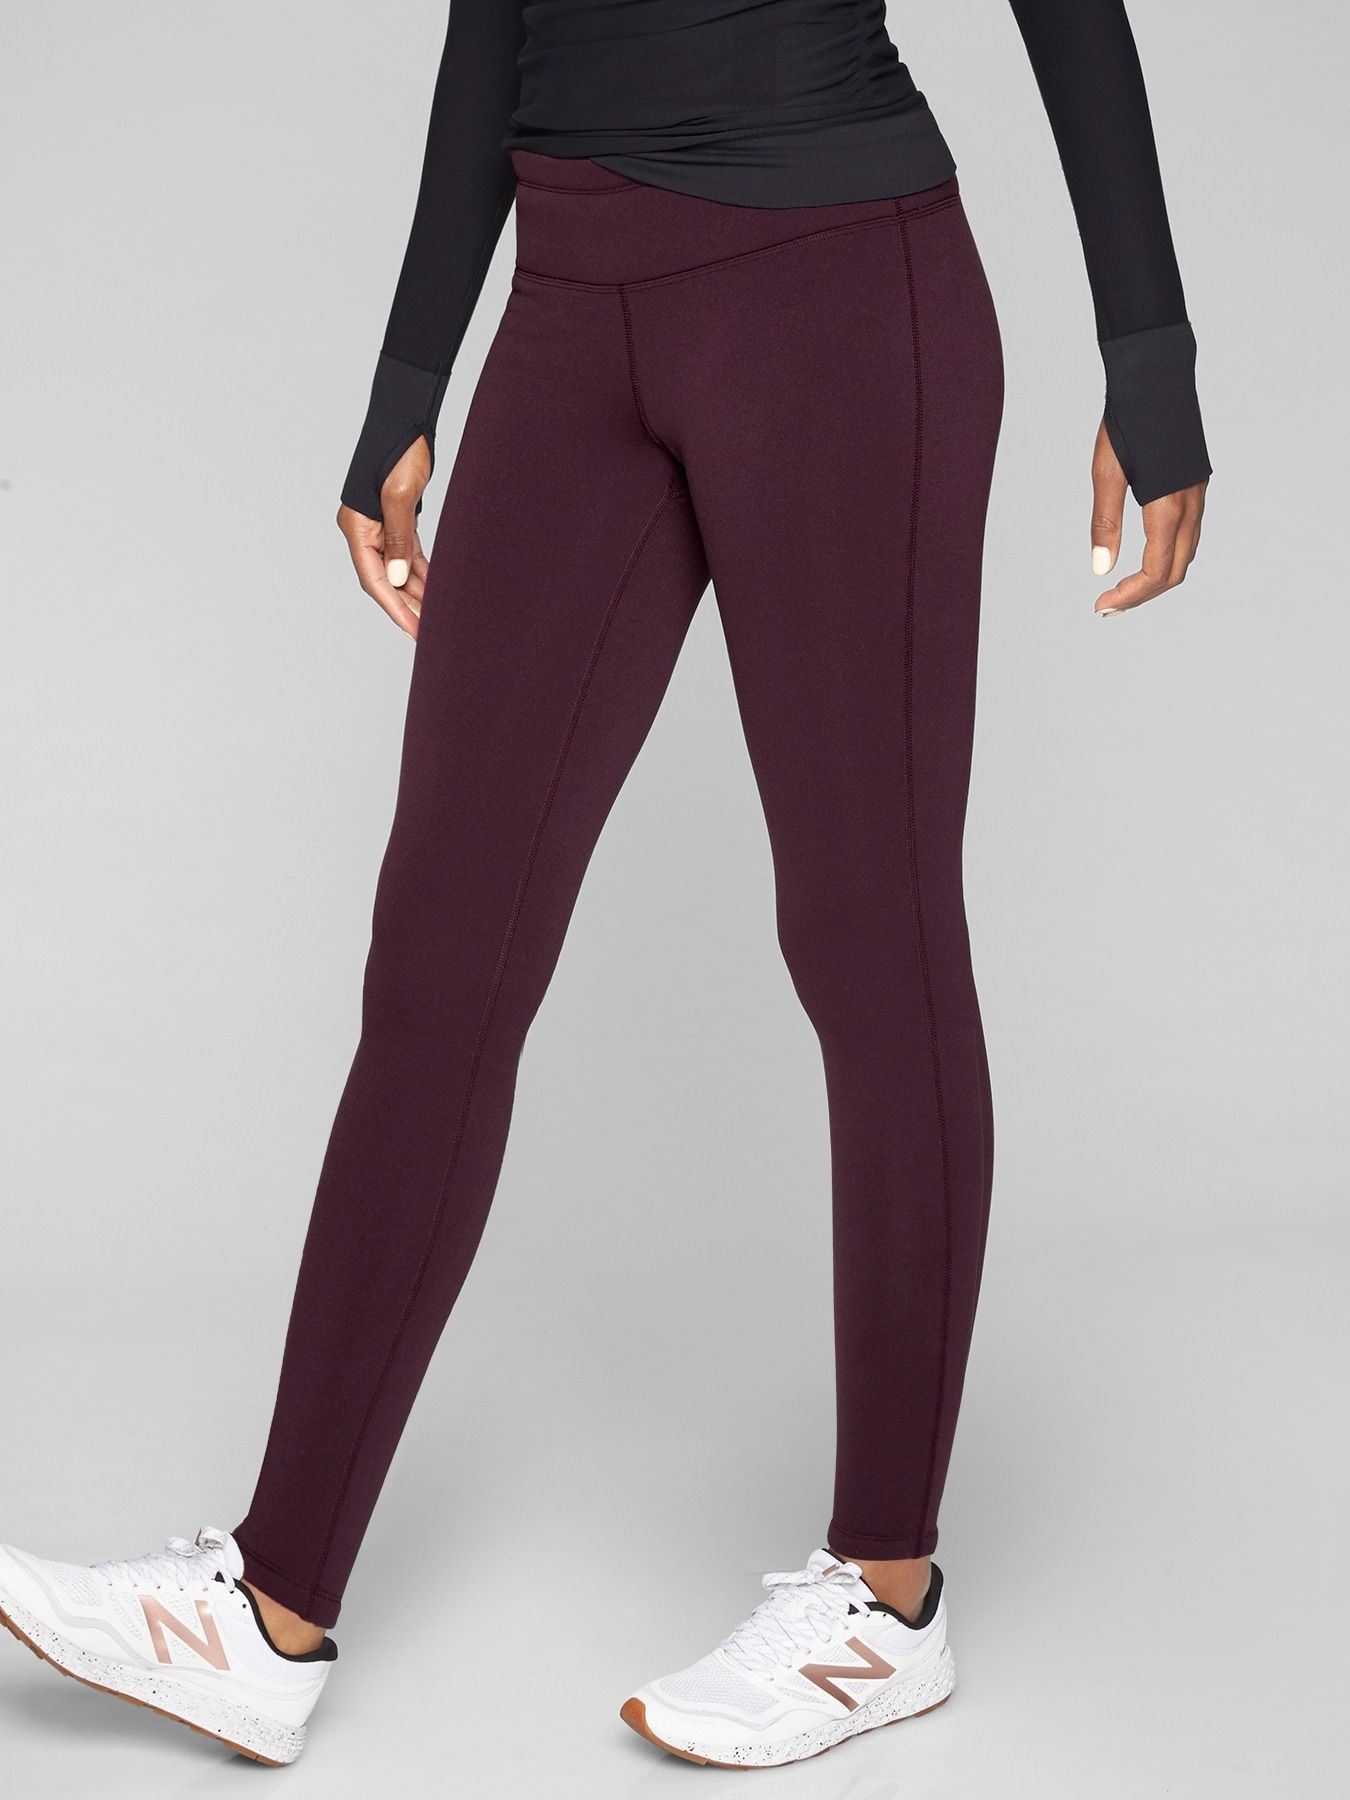 9d4344038a0c6e Polartec® Power Stretch® Tight | Fit | Tight leggings, Maroon ...